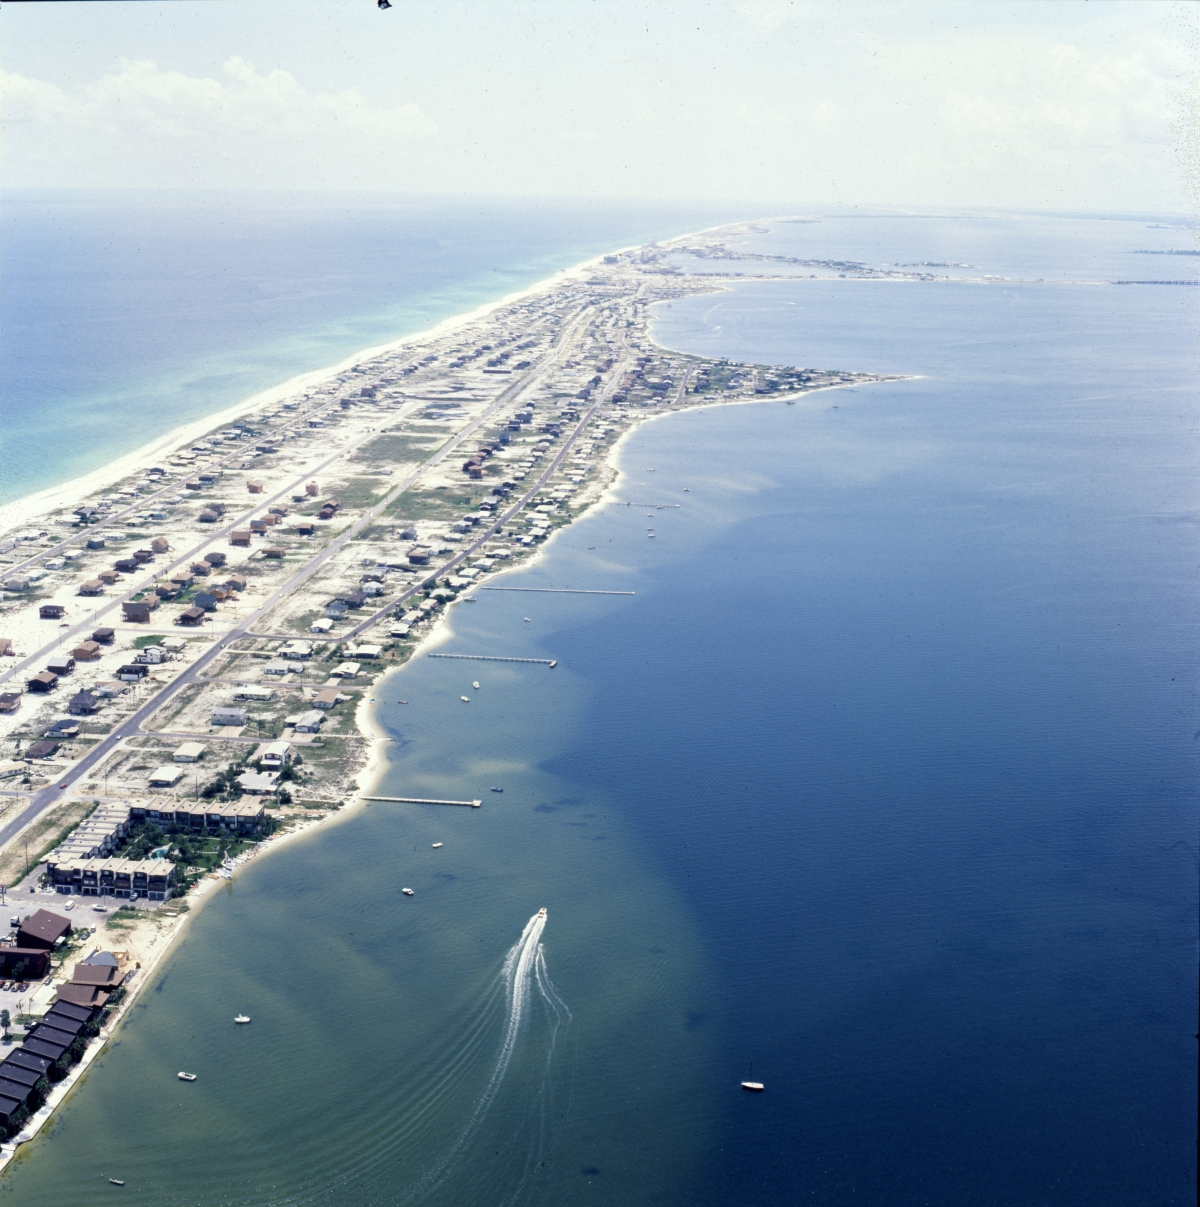 Aerial view looking west over Pensacola Beach.